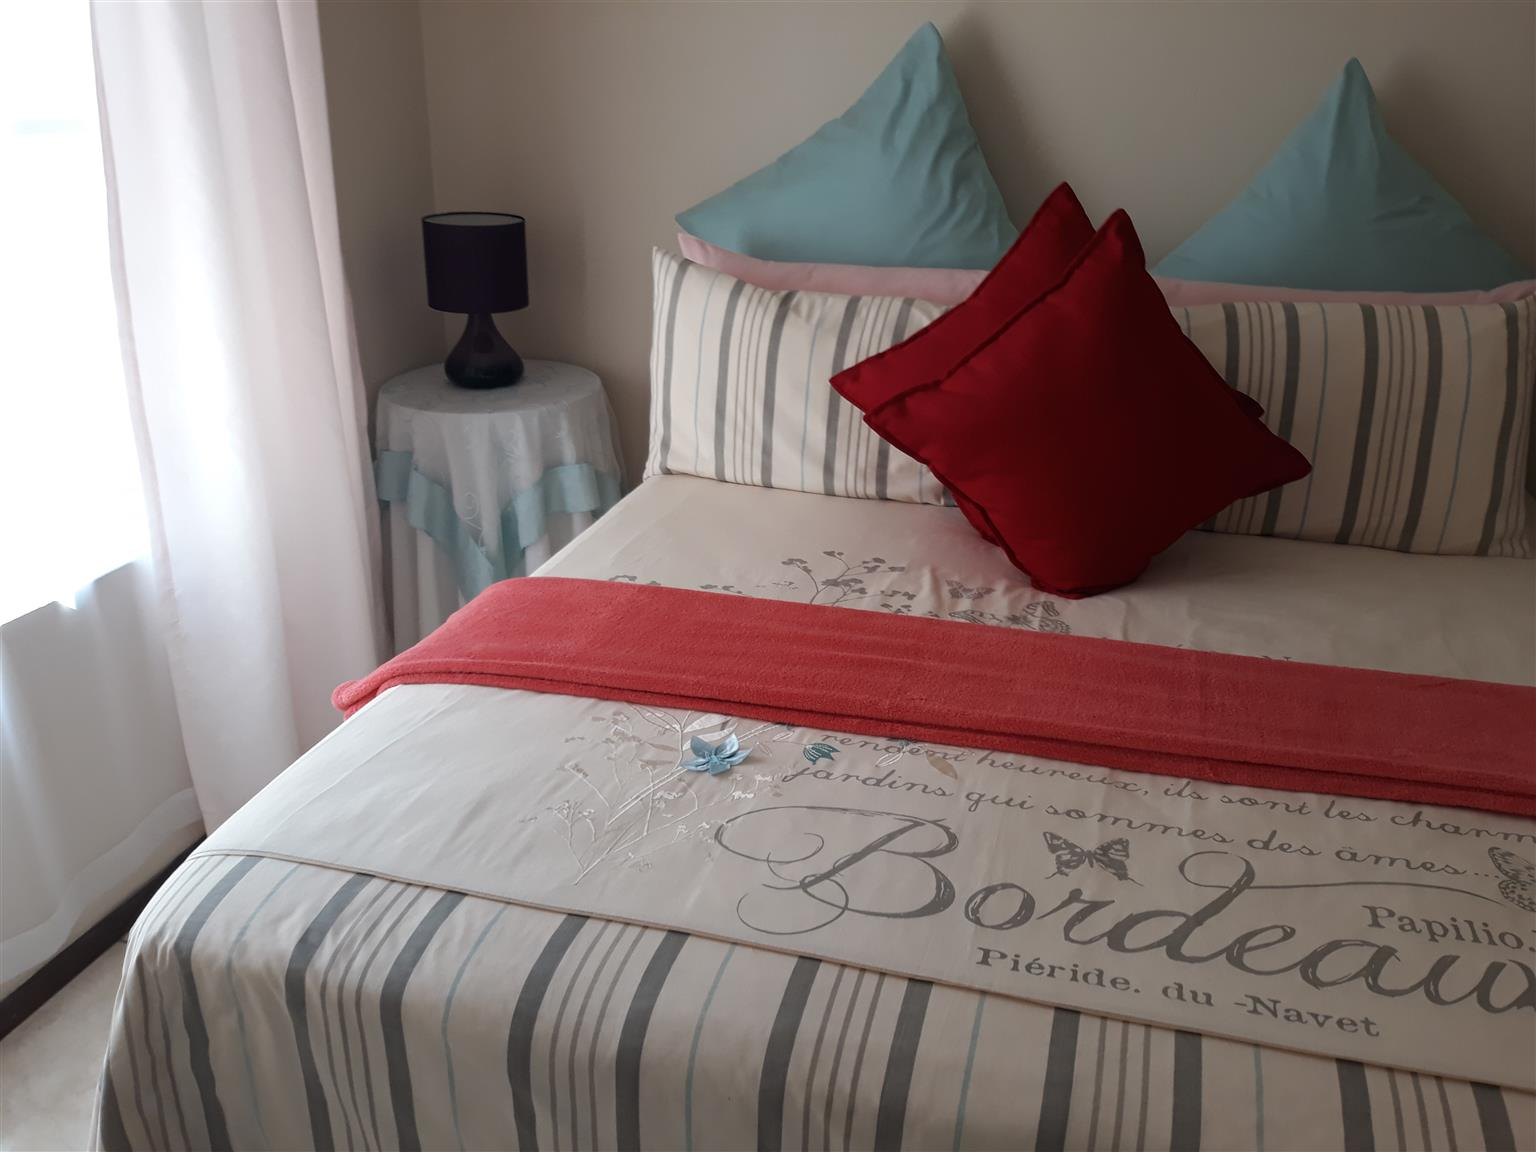 3Bedrooms with 2Bathrooms holiday home in Margate @ R1500 per night